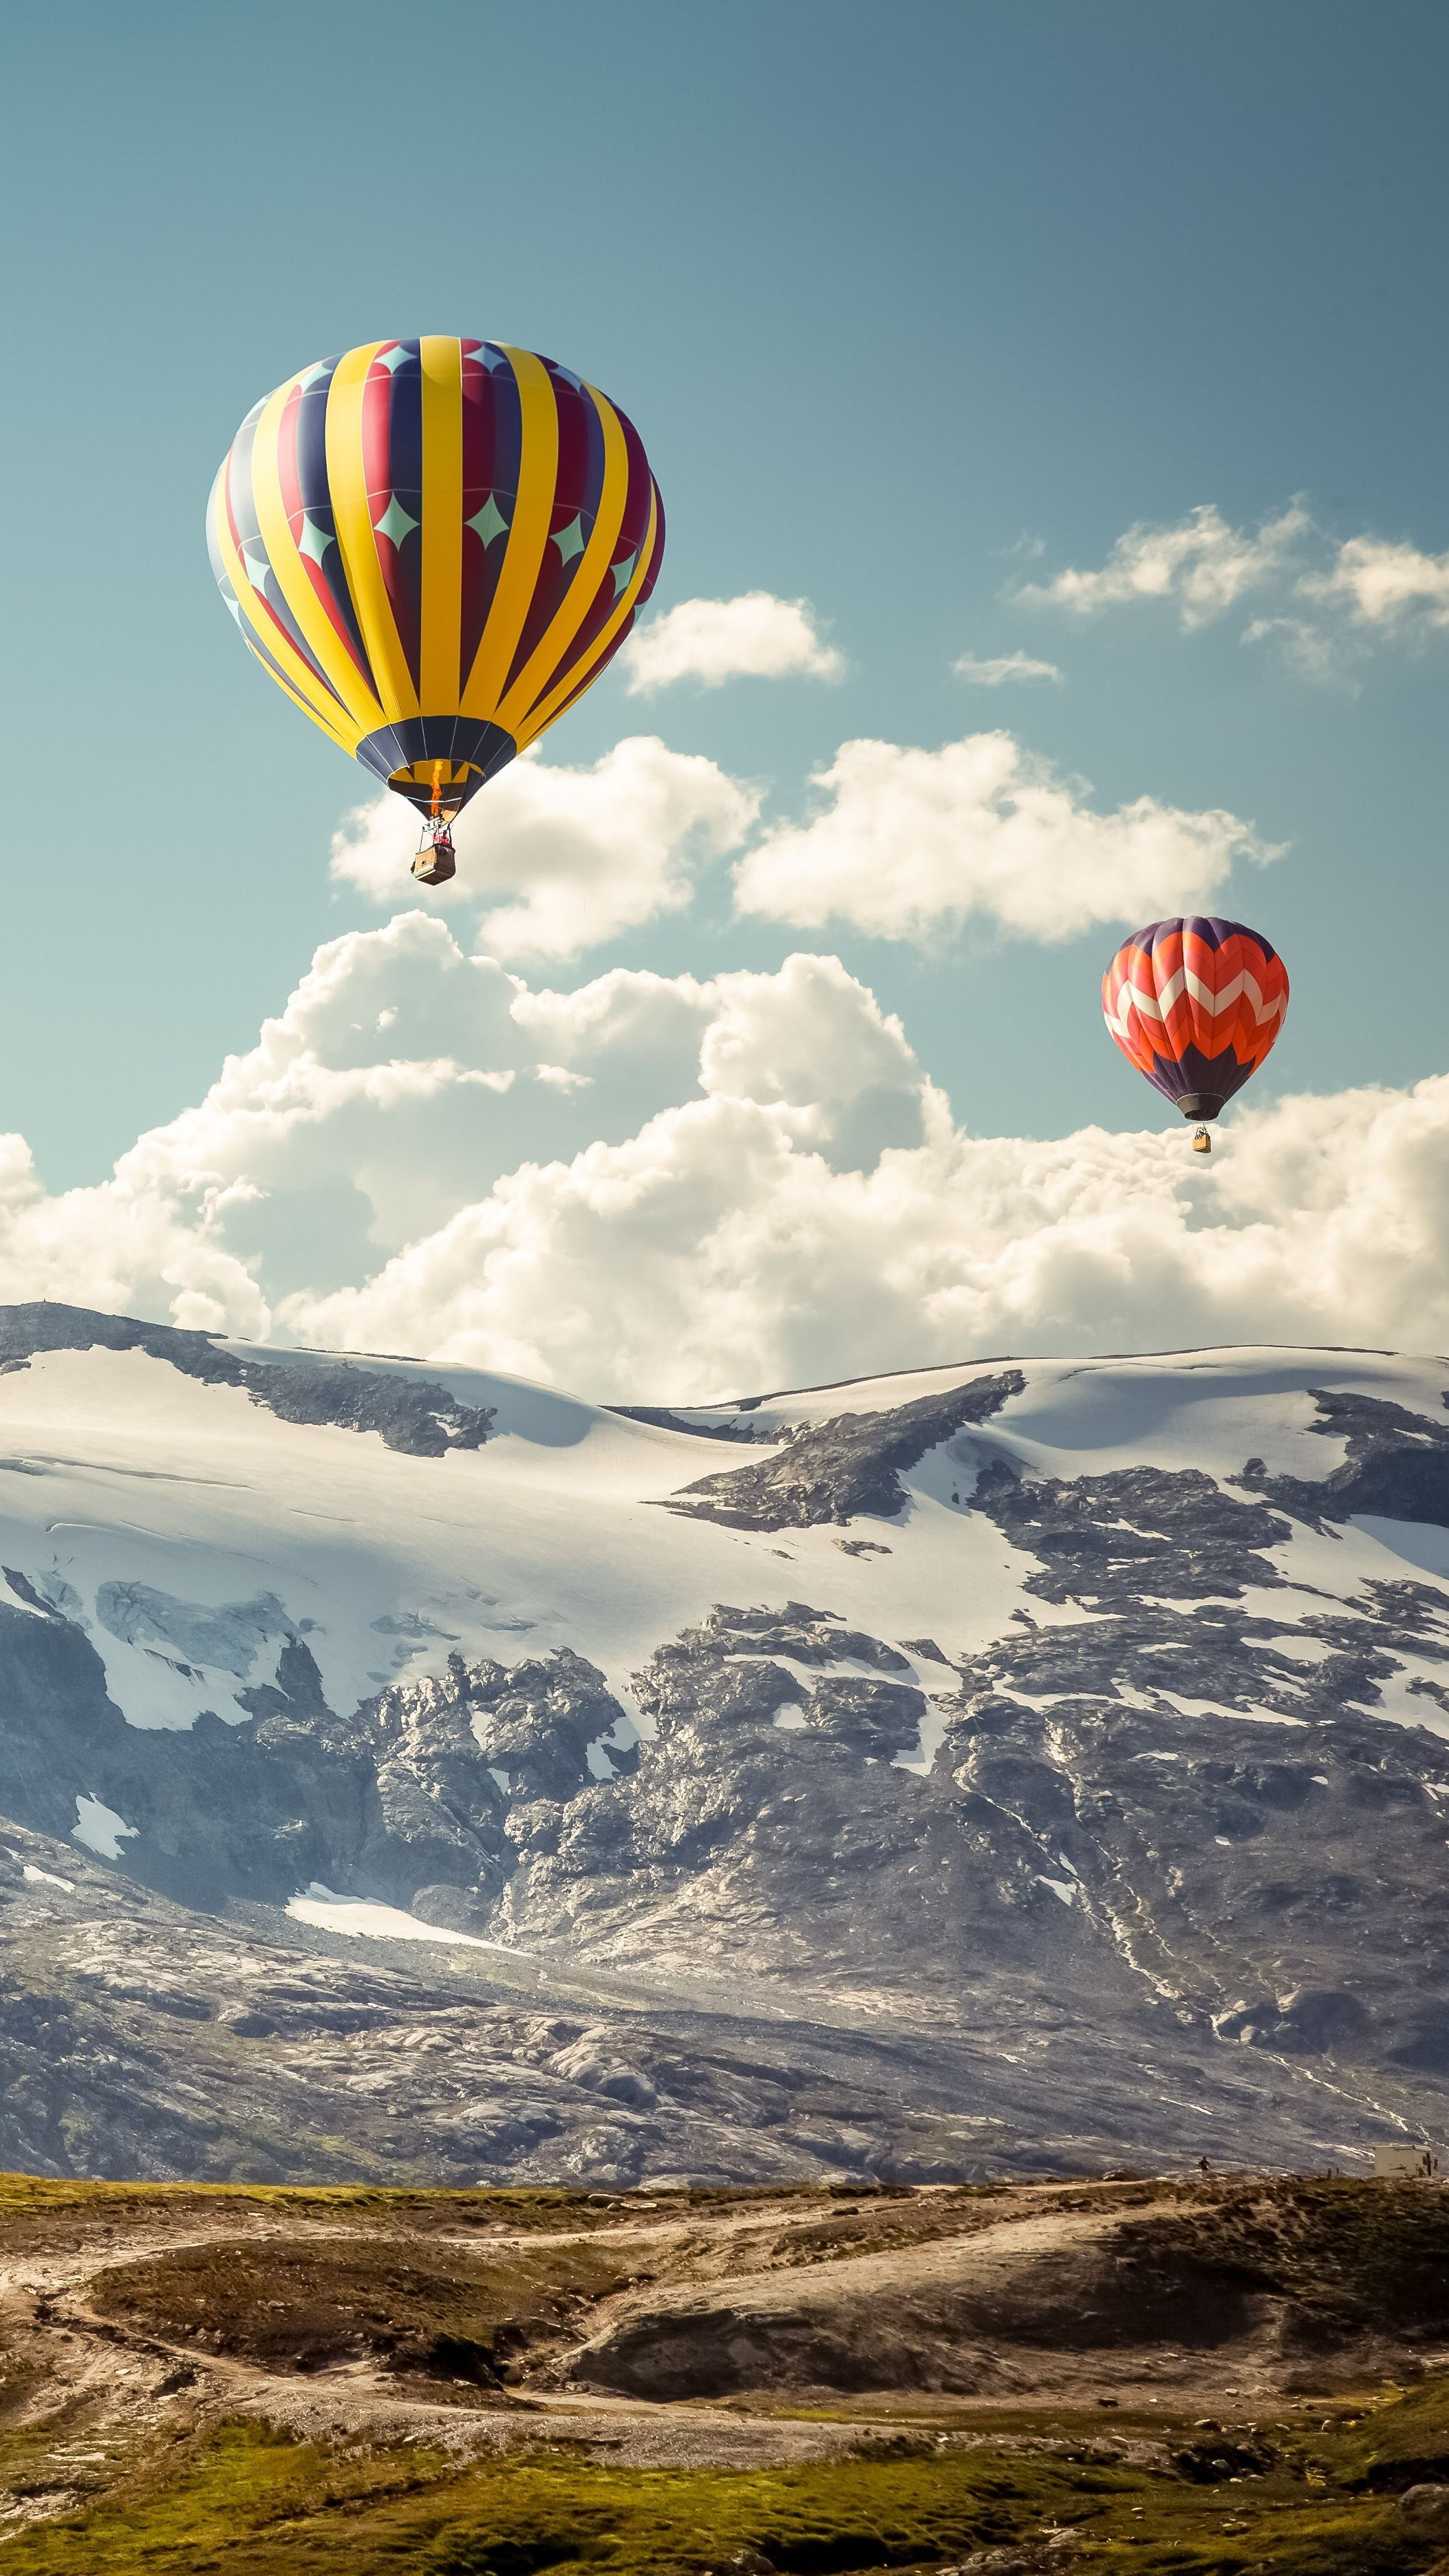 Hot Air Balloons 5k Iphone Wallpaper Sicak Hava Balonlari